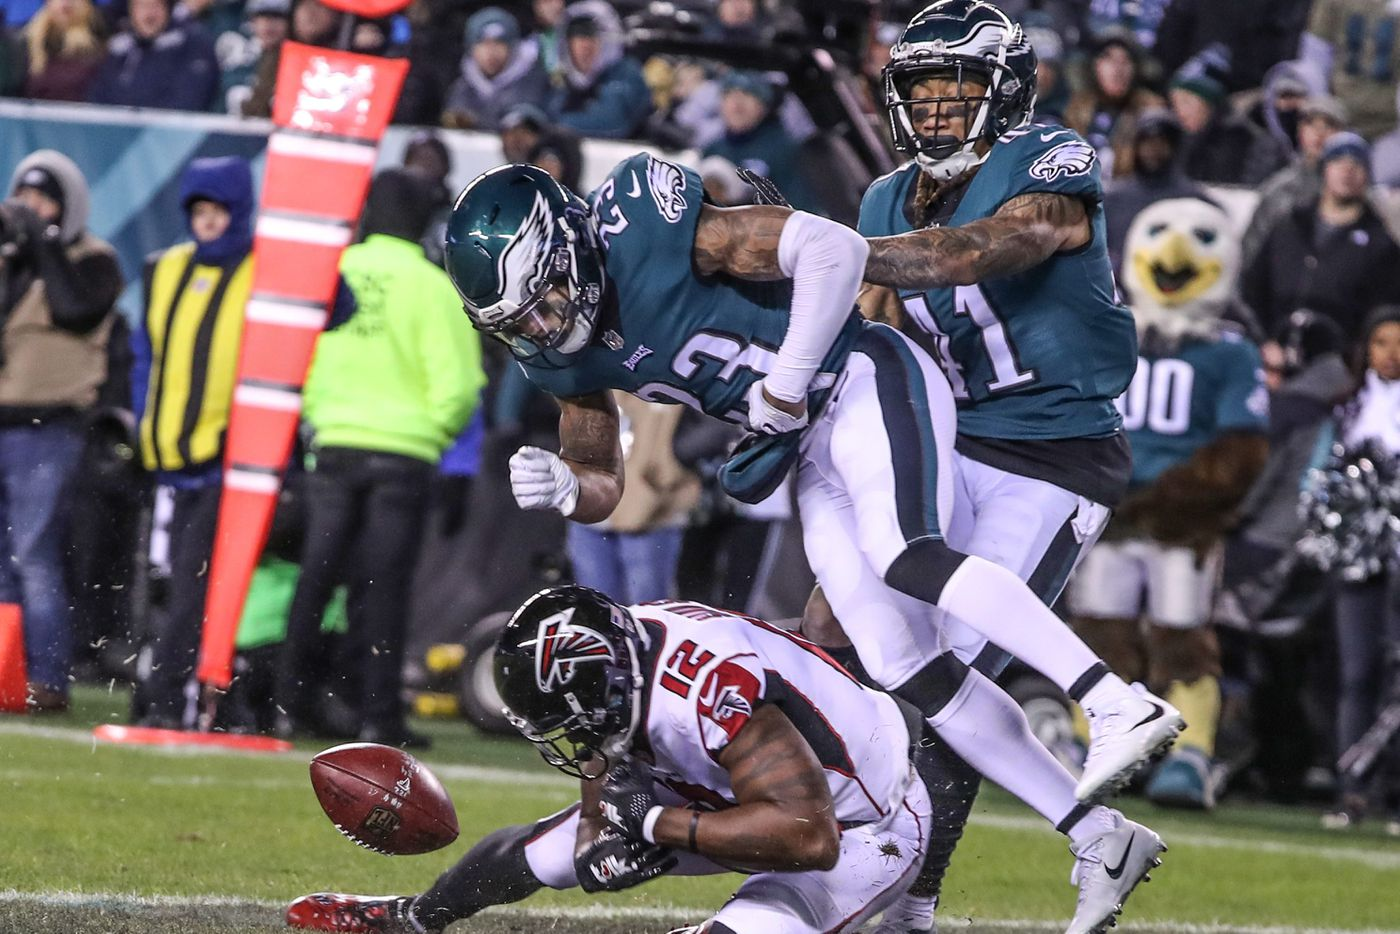 Eagles-Falcons: Statistics to know ahead of kickoff